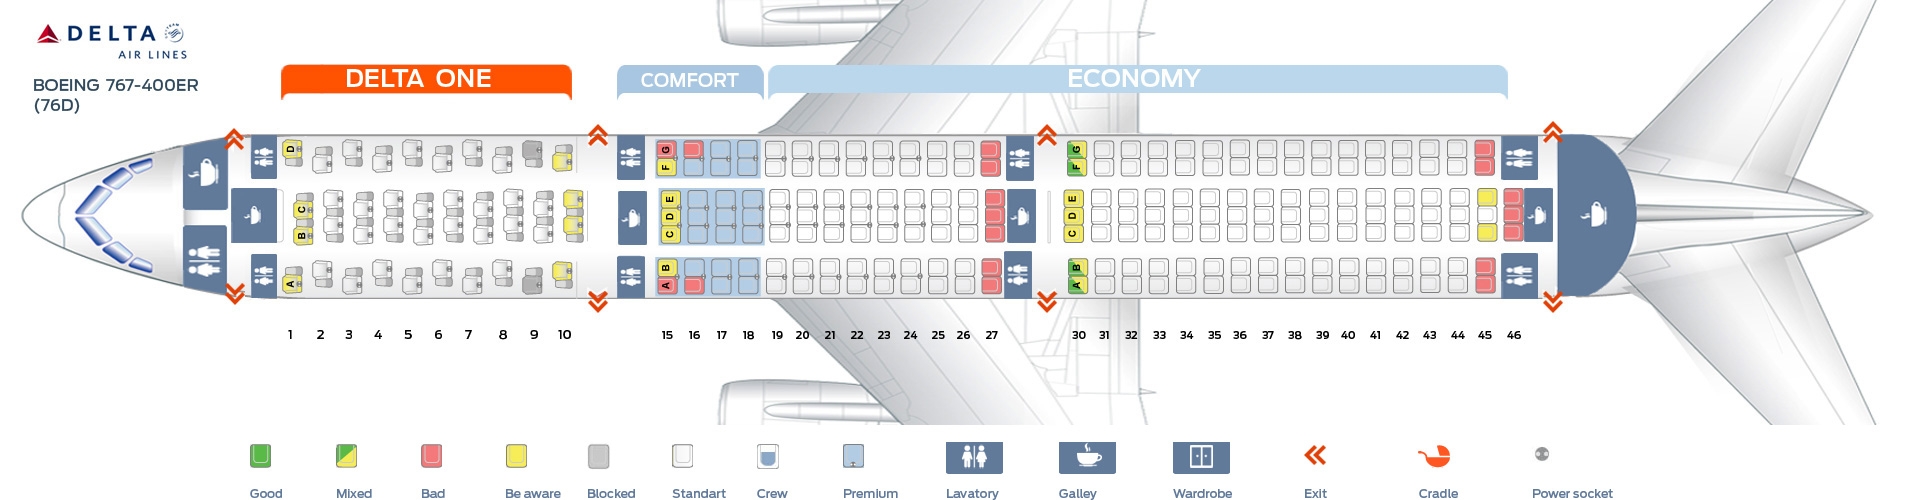 Seat_map_Delta_Airlines_Boeing_767-400ER